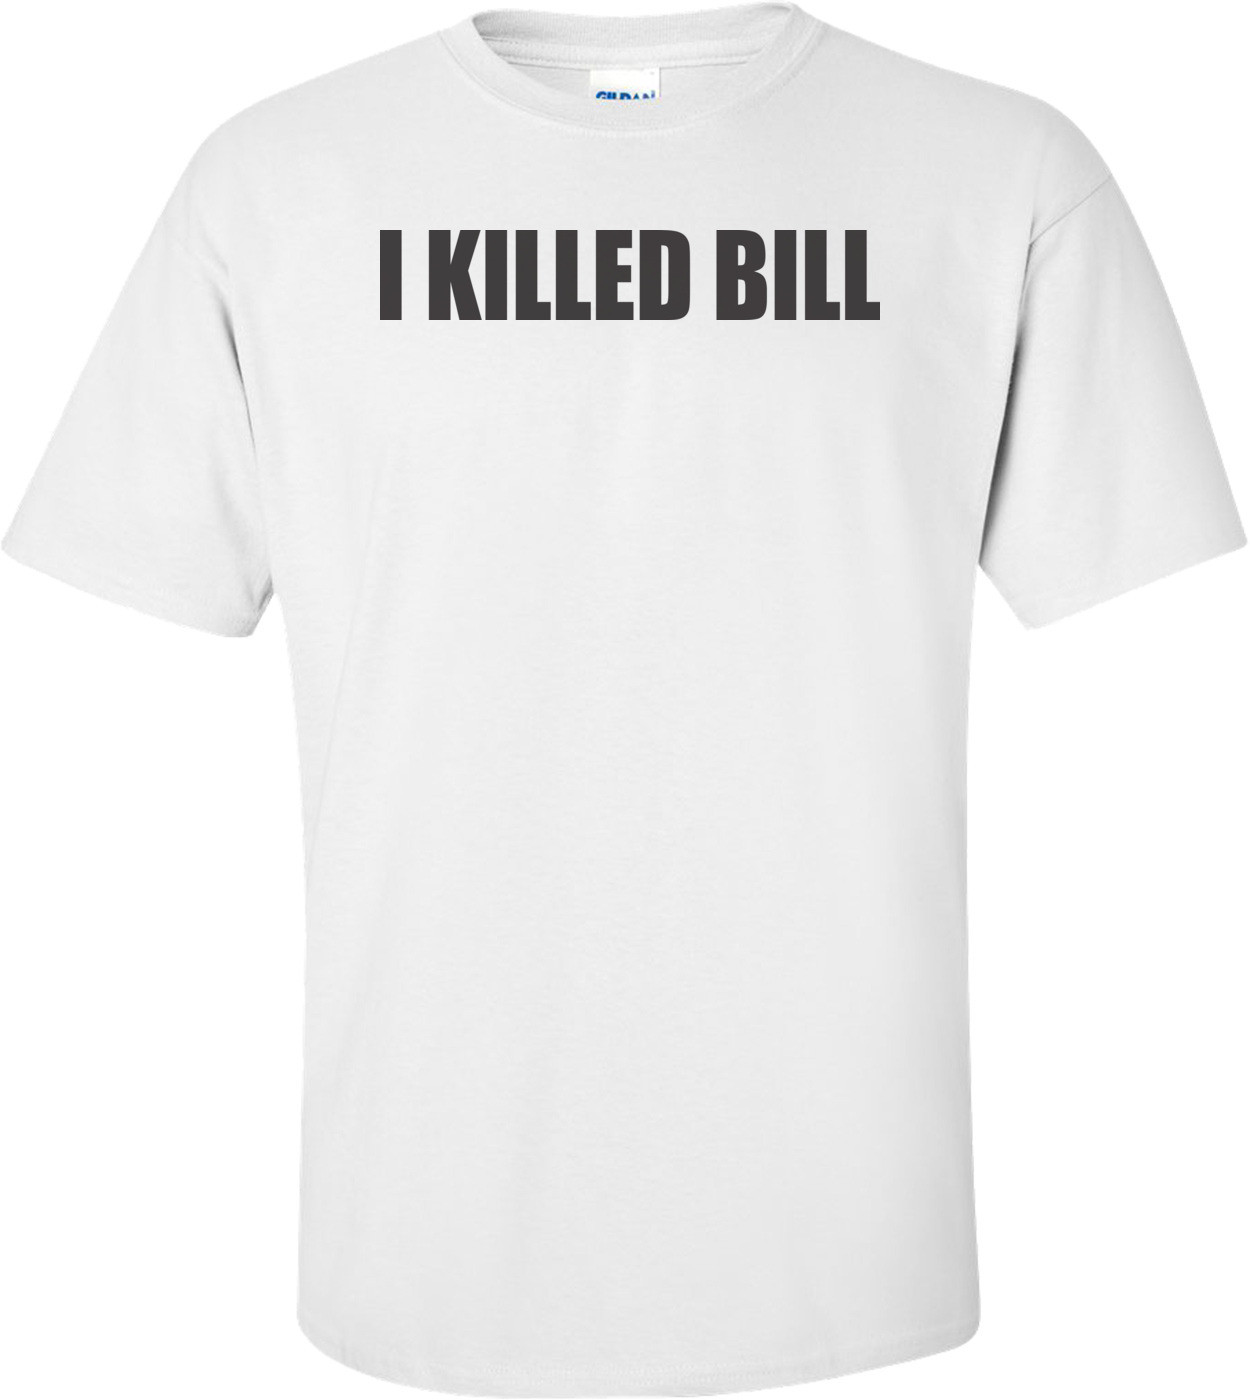 I Killed Bill T-shirt